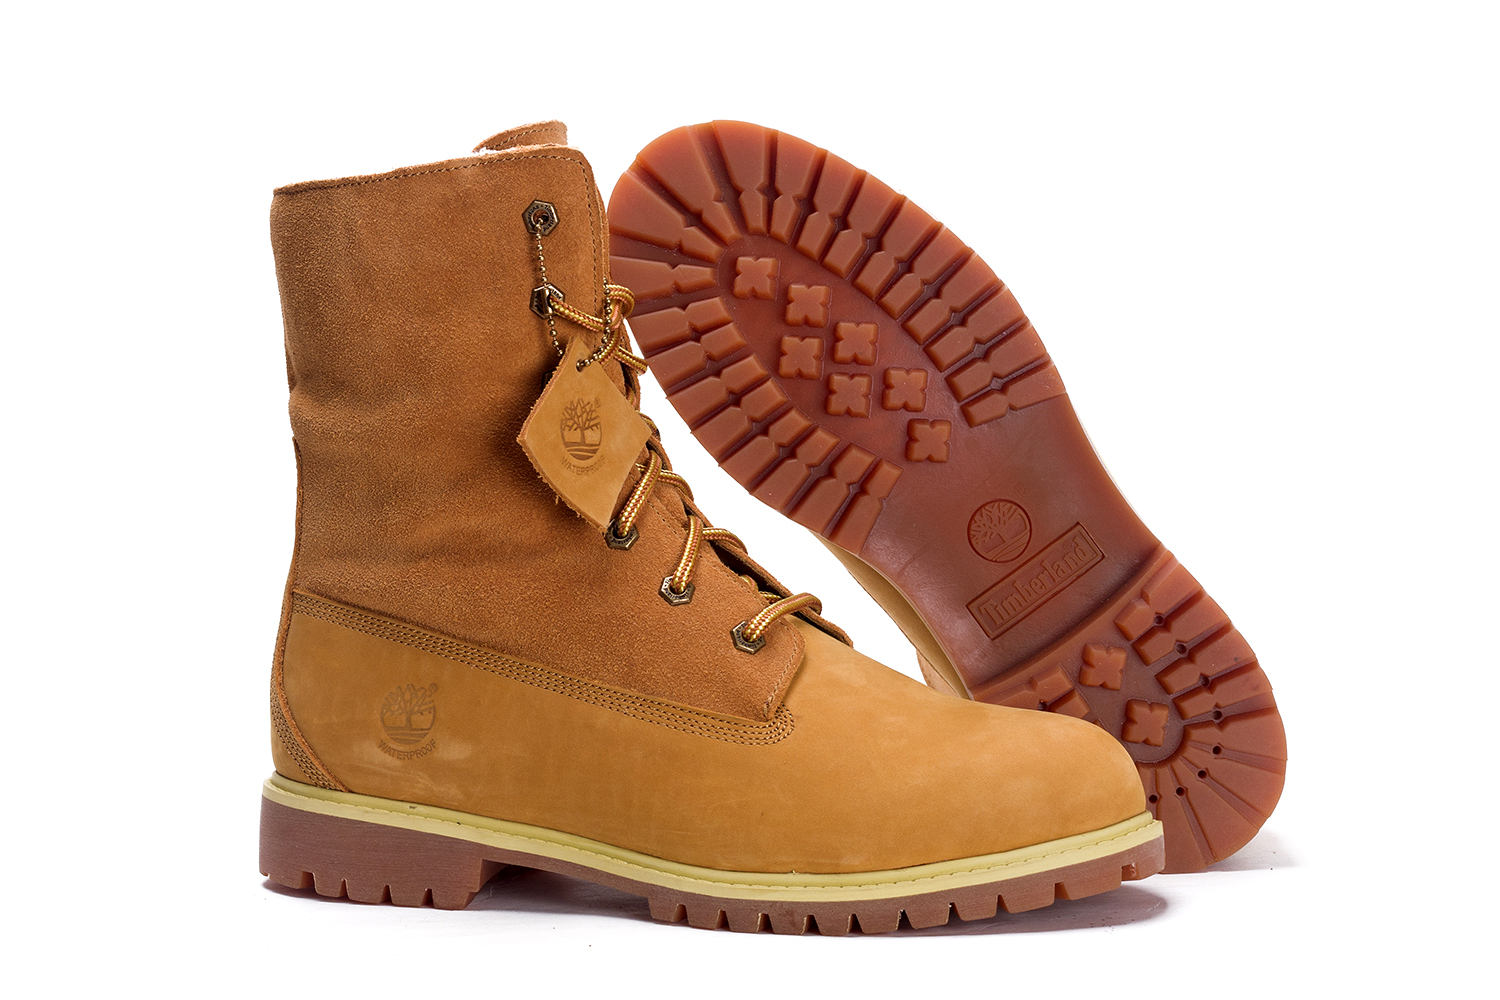 chaussure timberland pour fille chaussure timberland homme pas cher bottes timberland rouge. Black Bedroom Furniture Sets. Home Design Ideas